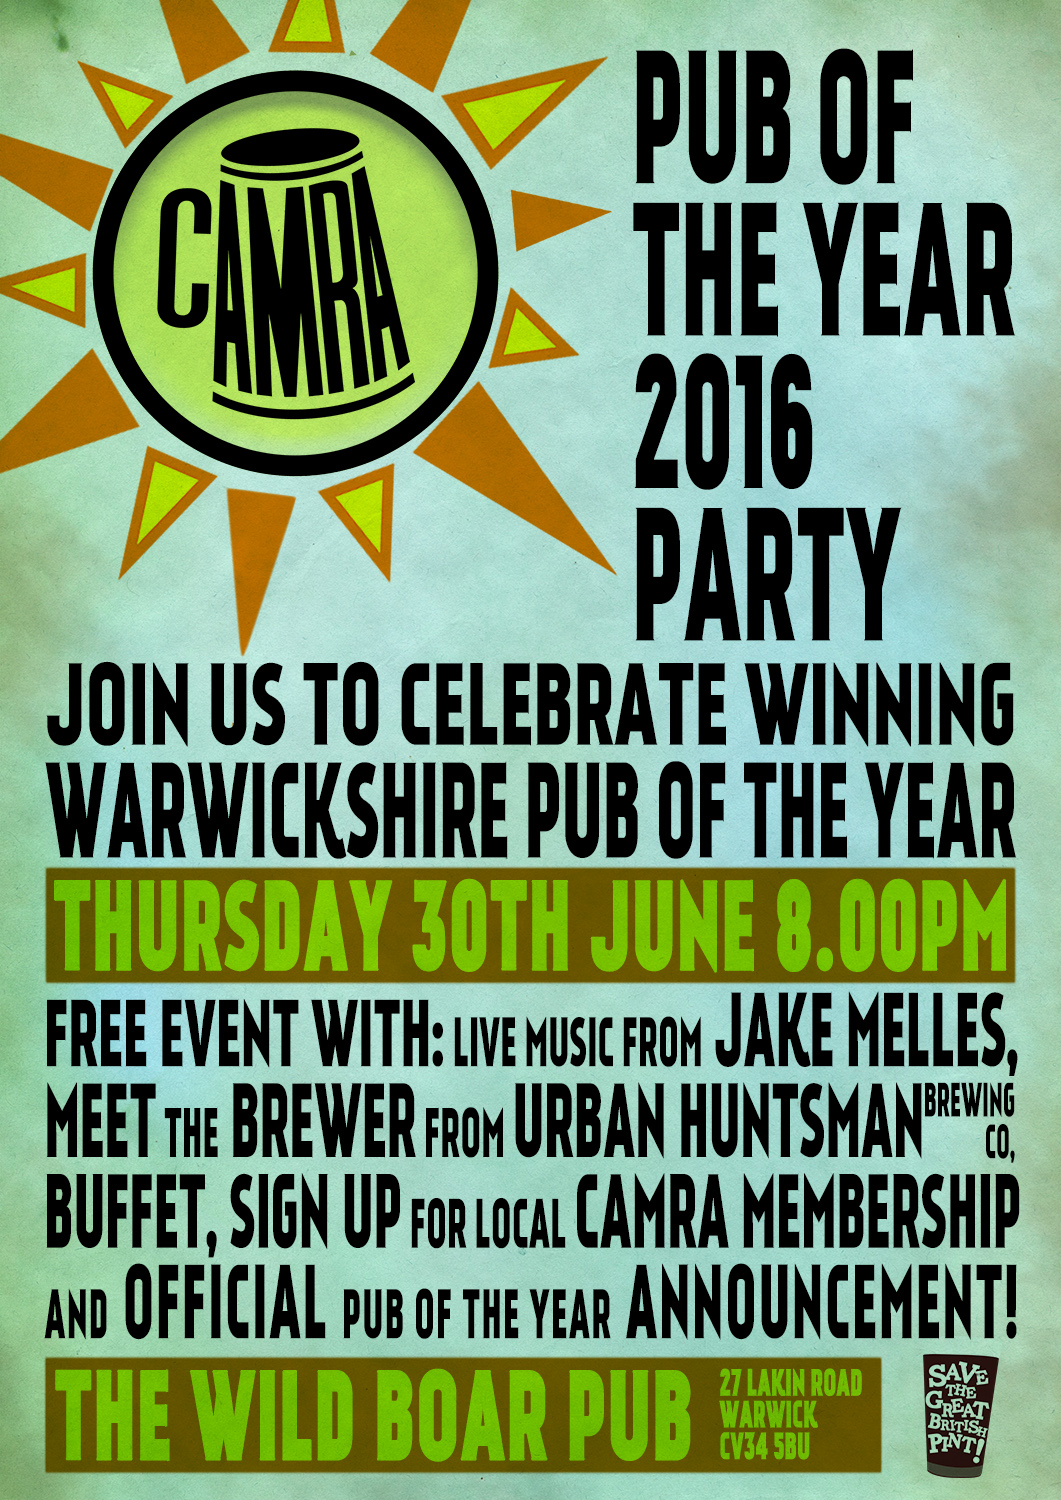 pub of the year Warwickshire 2016 poster